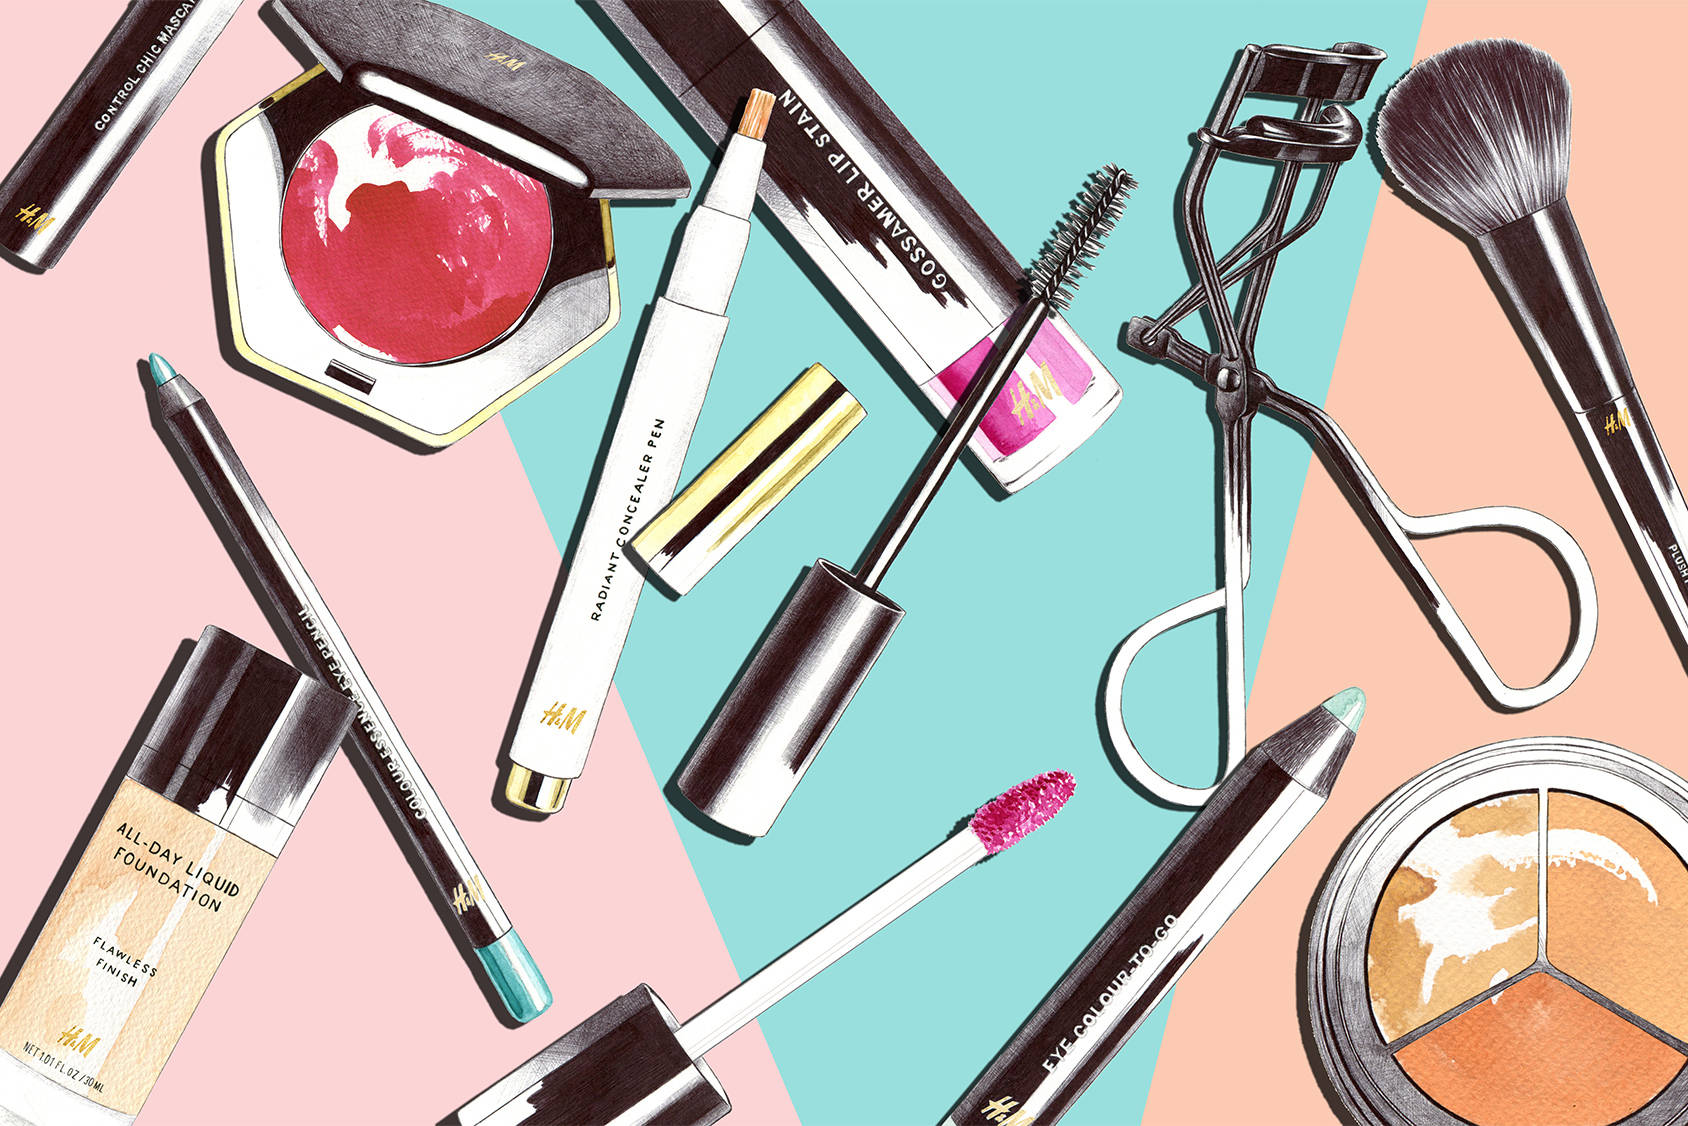 REBOOT YOUR SUMMER BEAUTY BAG